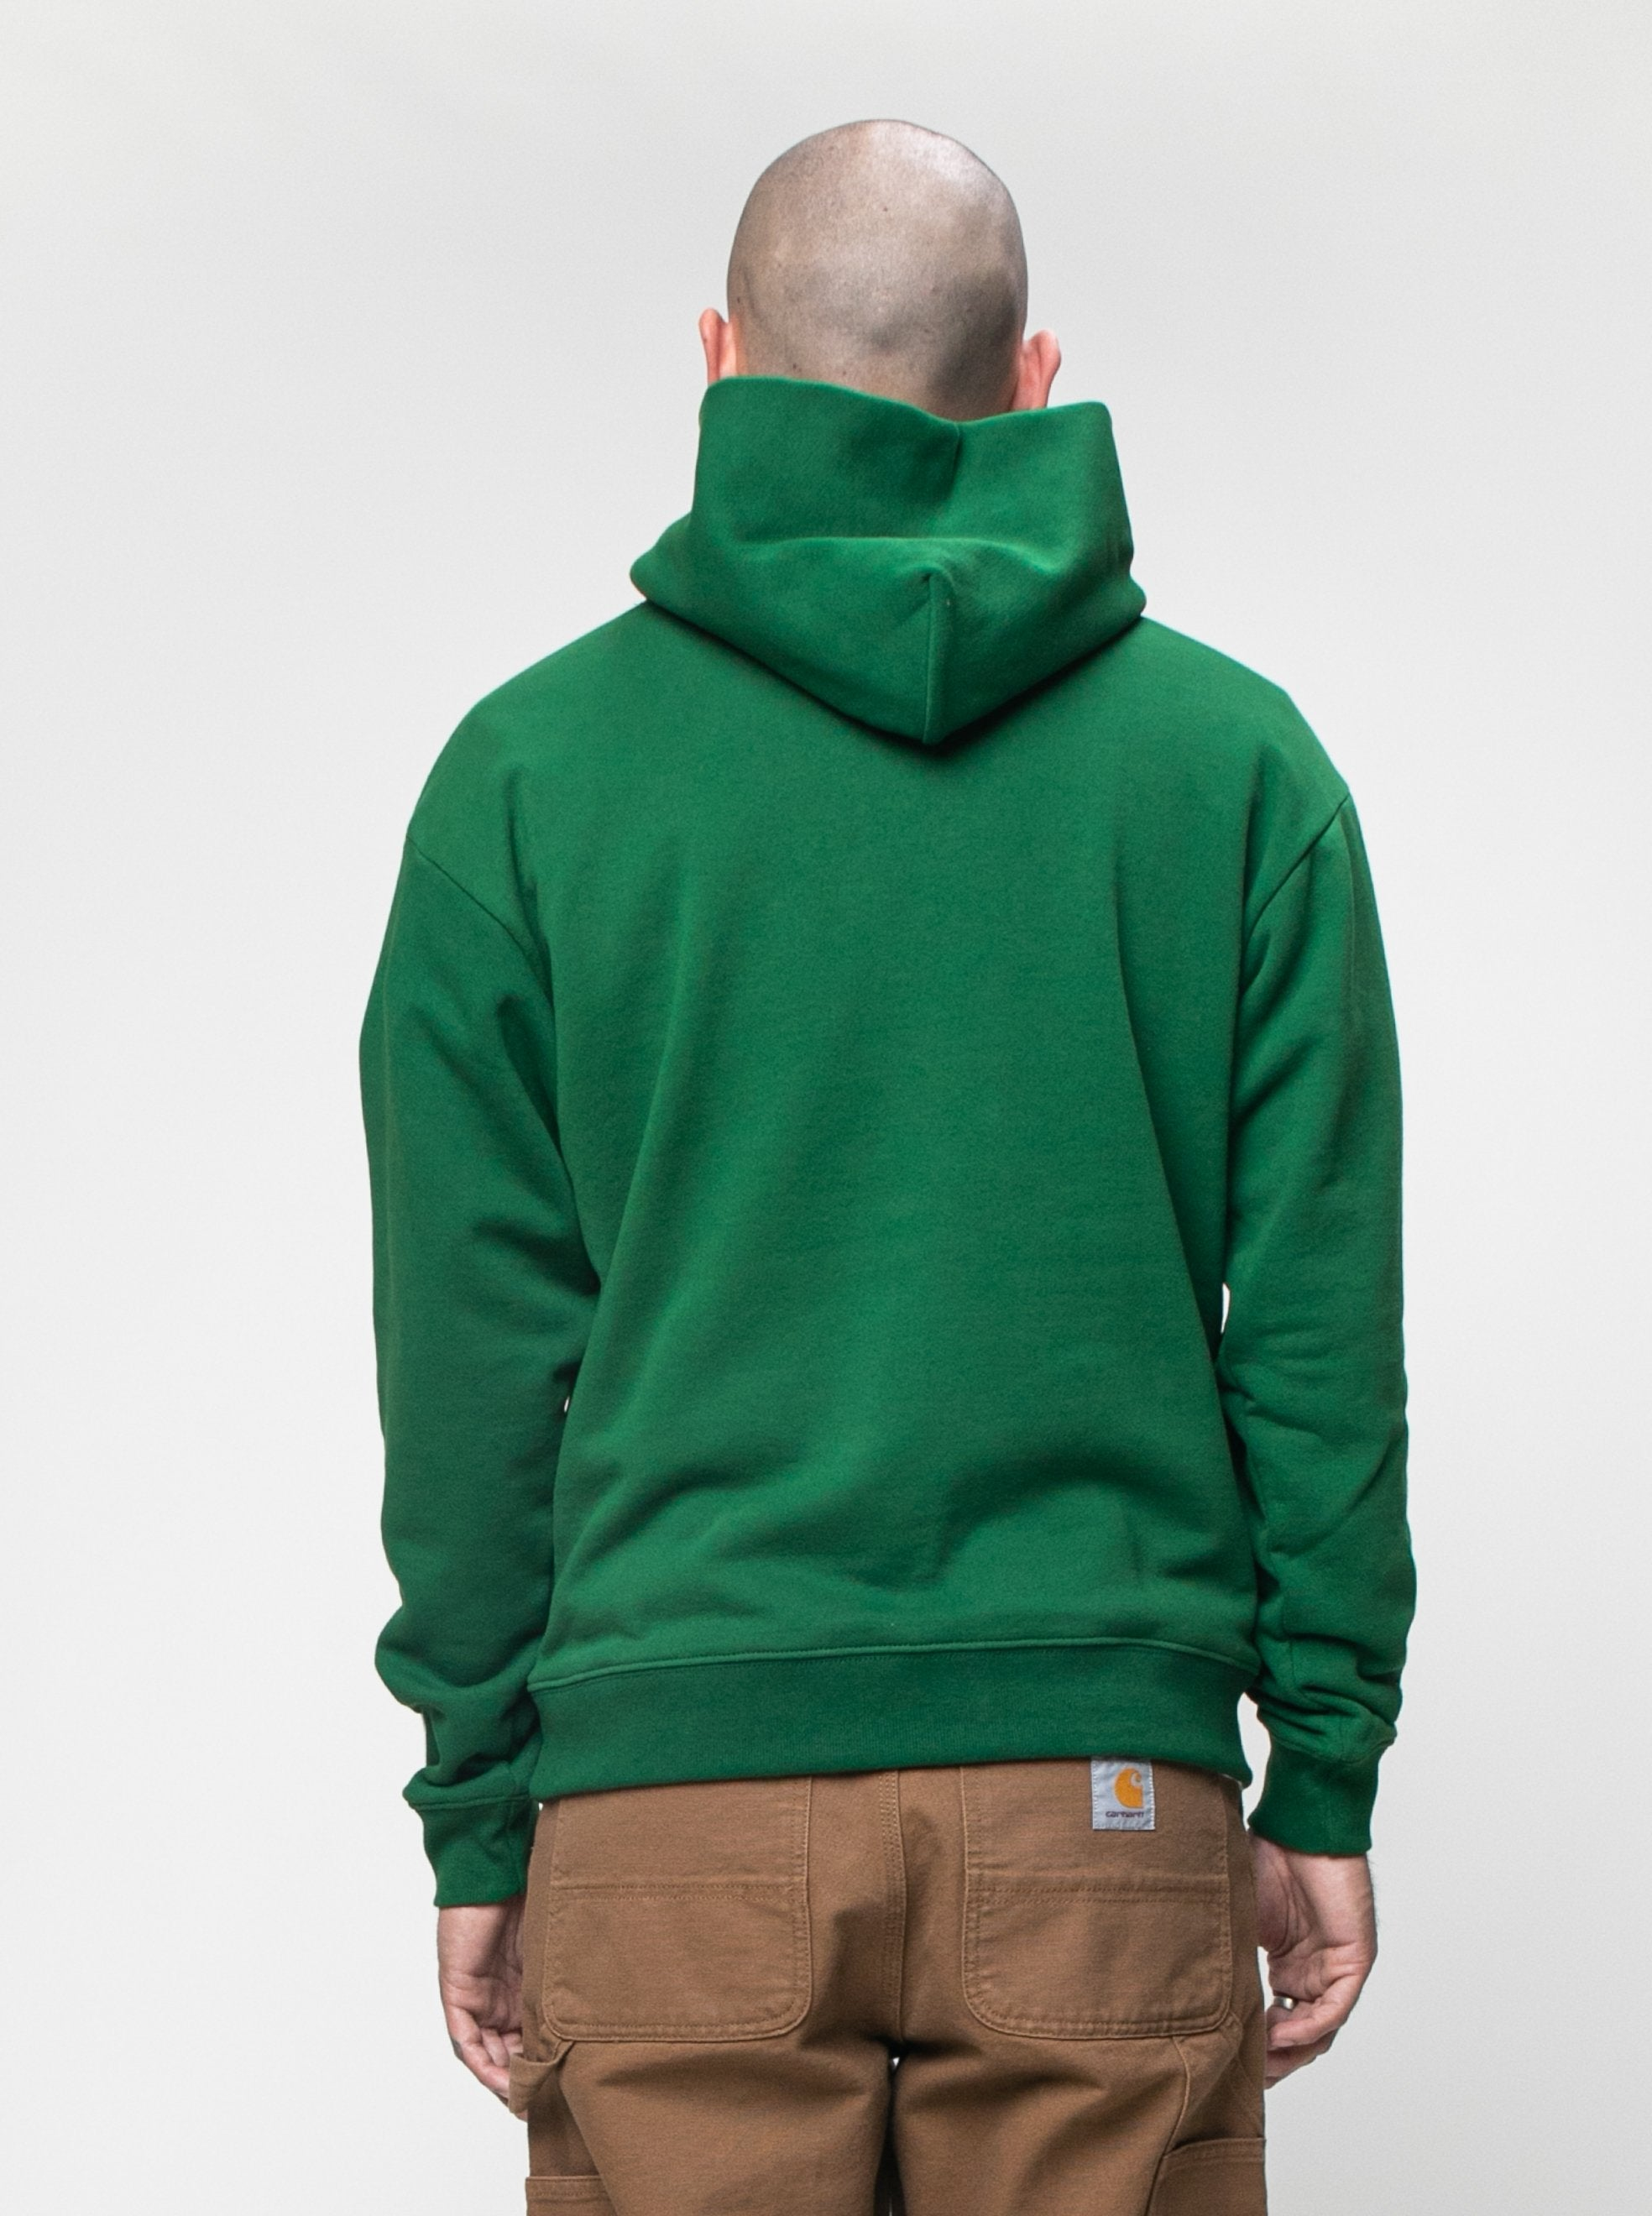 Green CPFM x Eco Mother Earth Hooded Sweatshirt 6